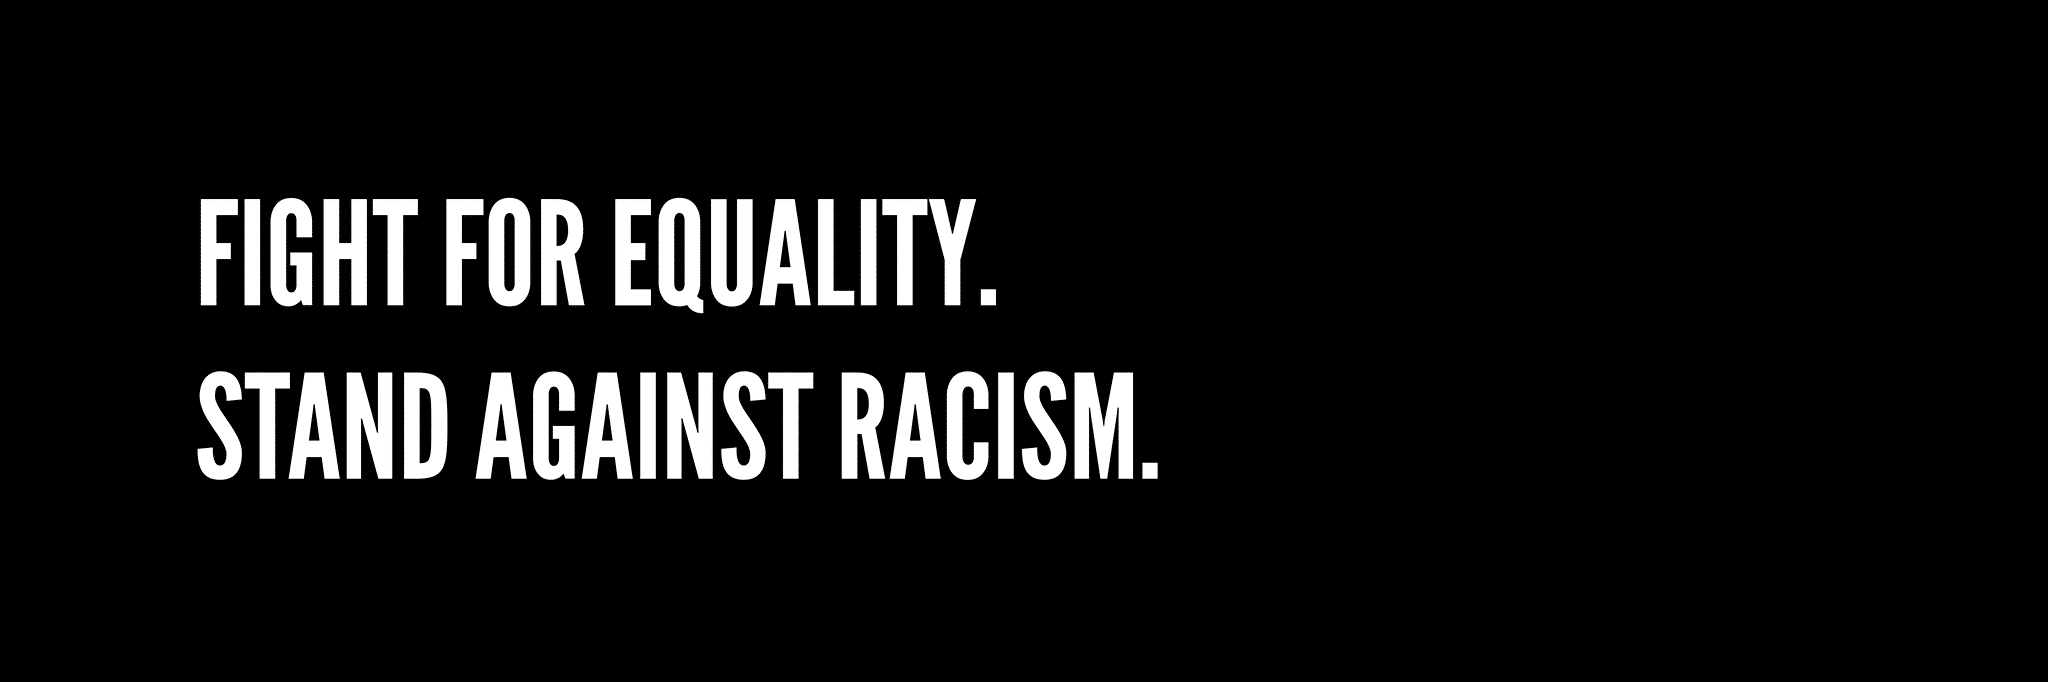 Stand Against Racism 1